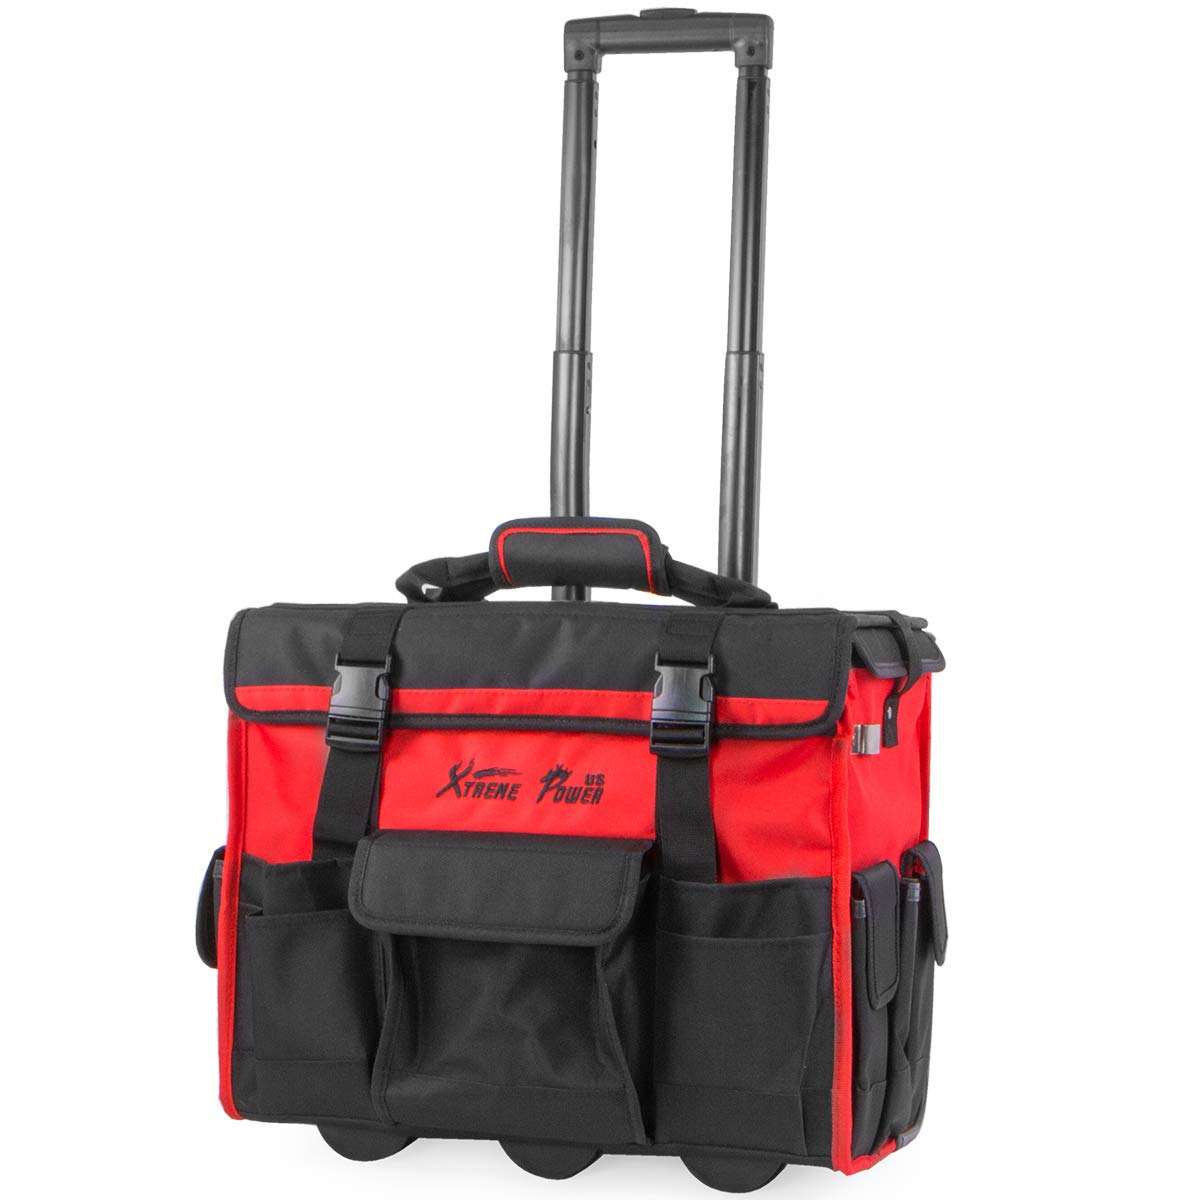 "XtremepowerUS Rolling Tool Bag Organizer with Telescoping Handle 18"" Wide Storage Organizer Bag Heavy Duty with Wheels"